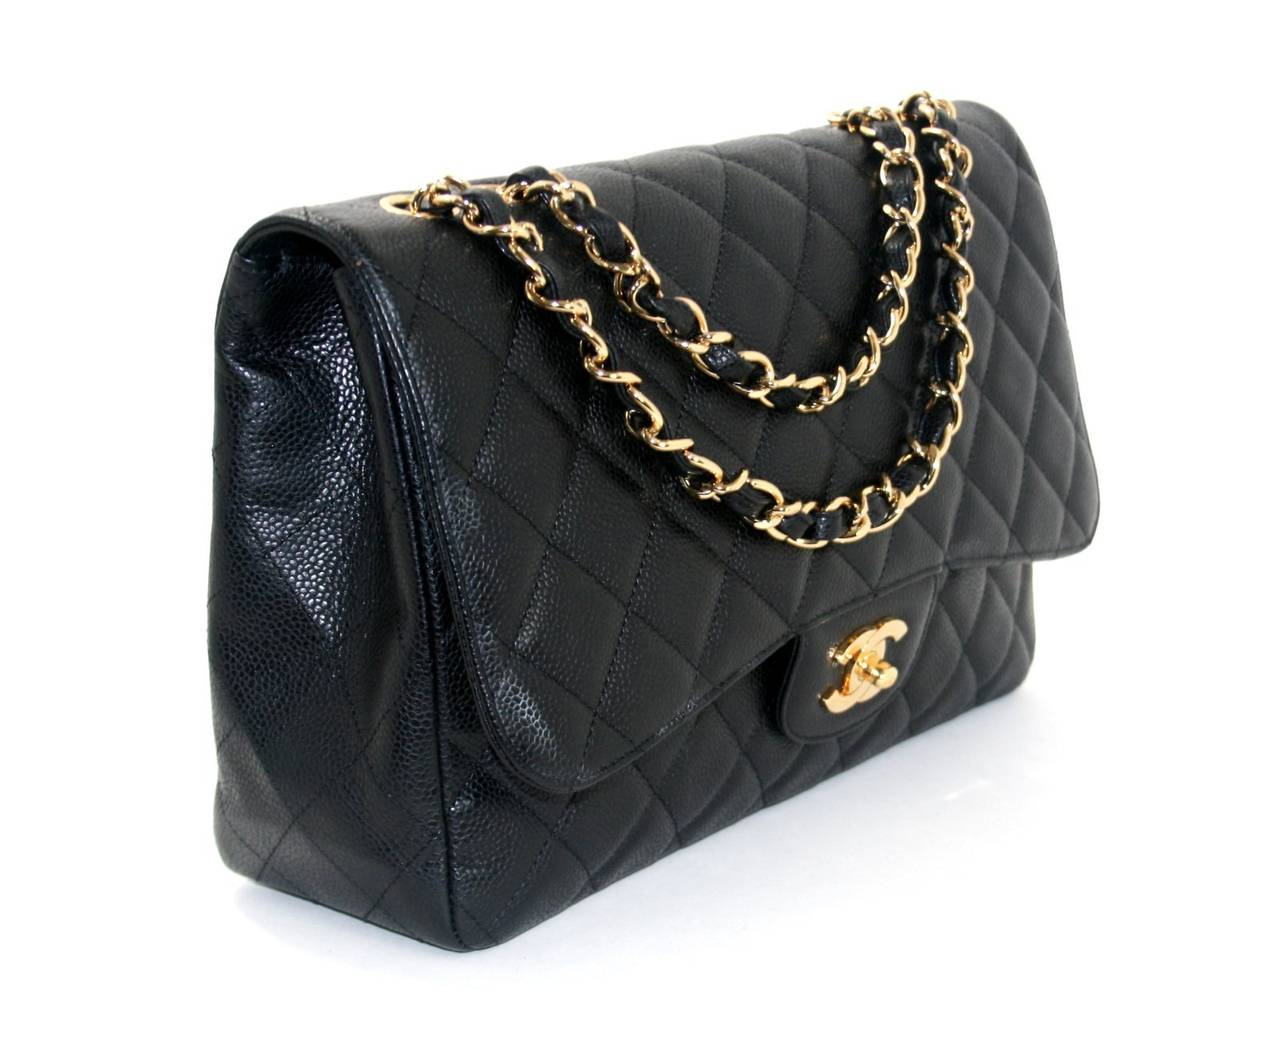 chanel black caviar leather jumbo classic flap bag ghw at